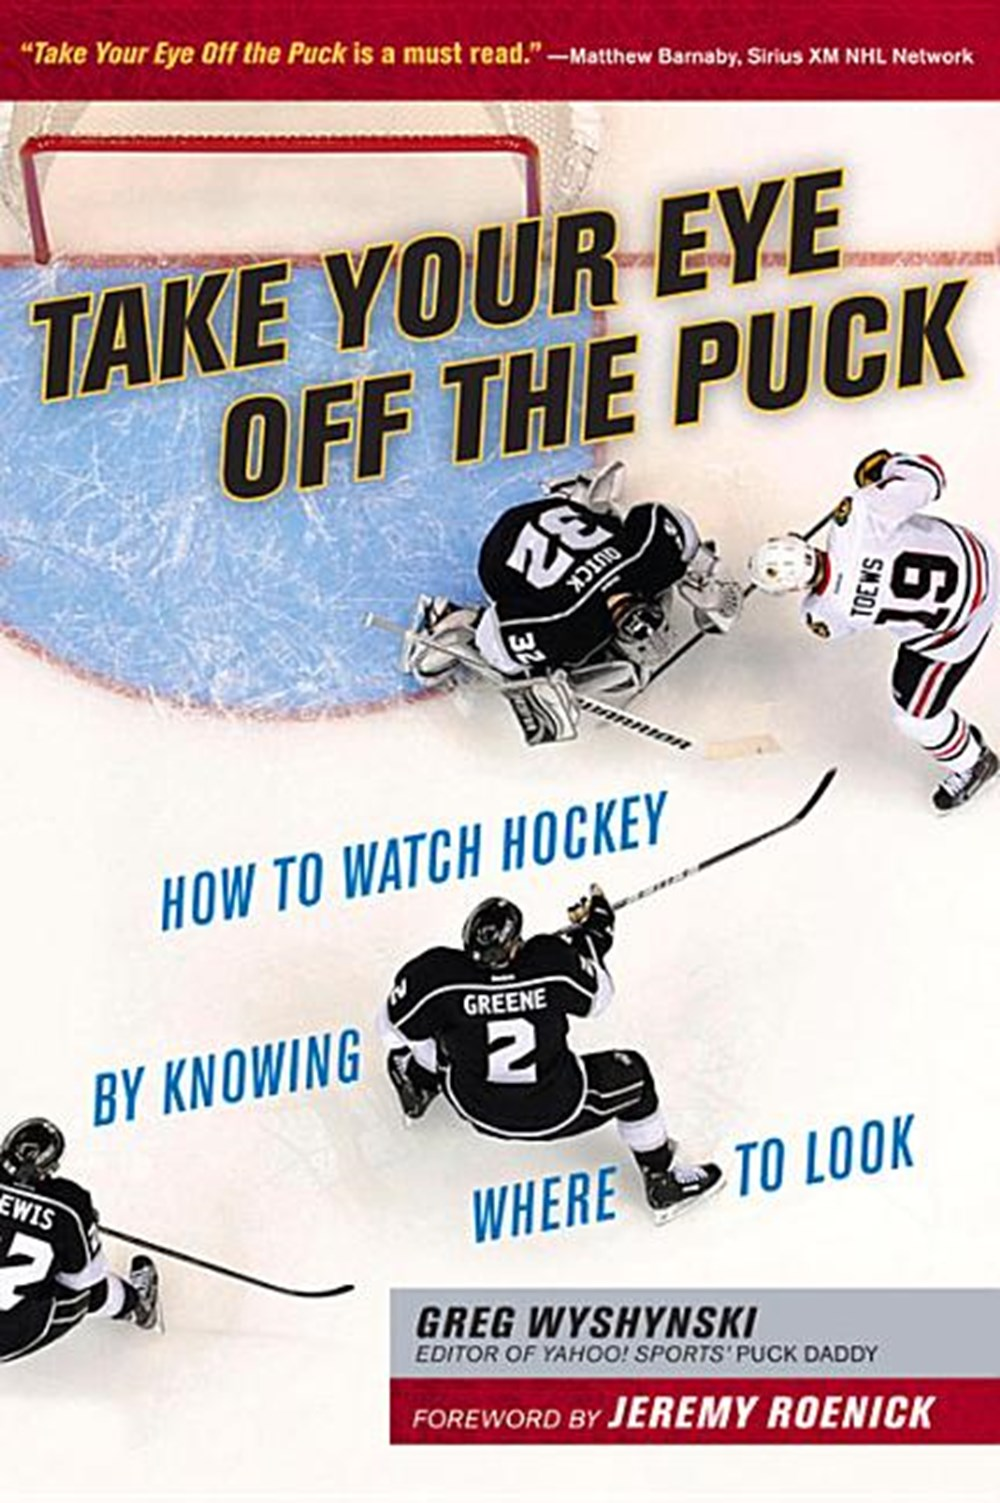 Take Your Eye Off the Puck How to Watch Hockey by Knowing Where to Look